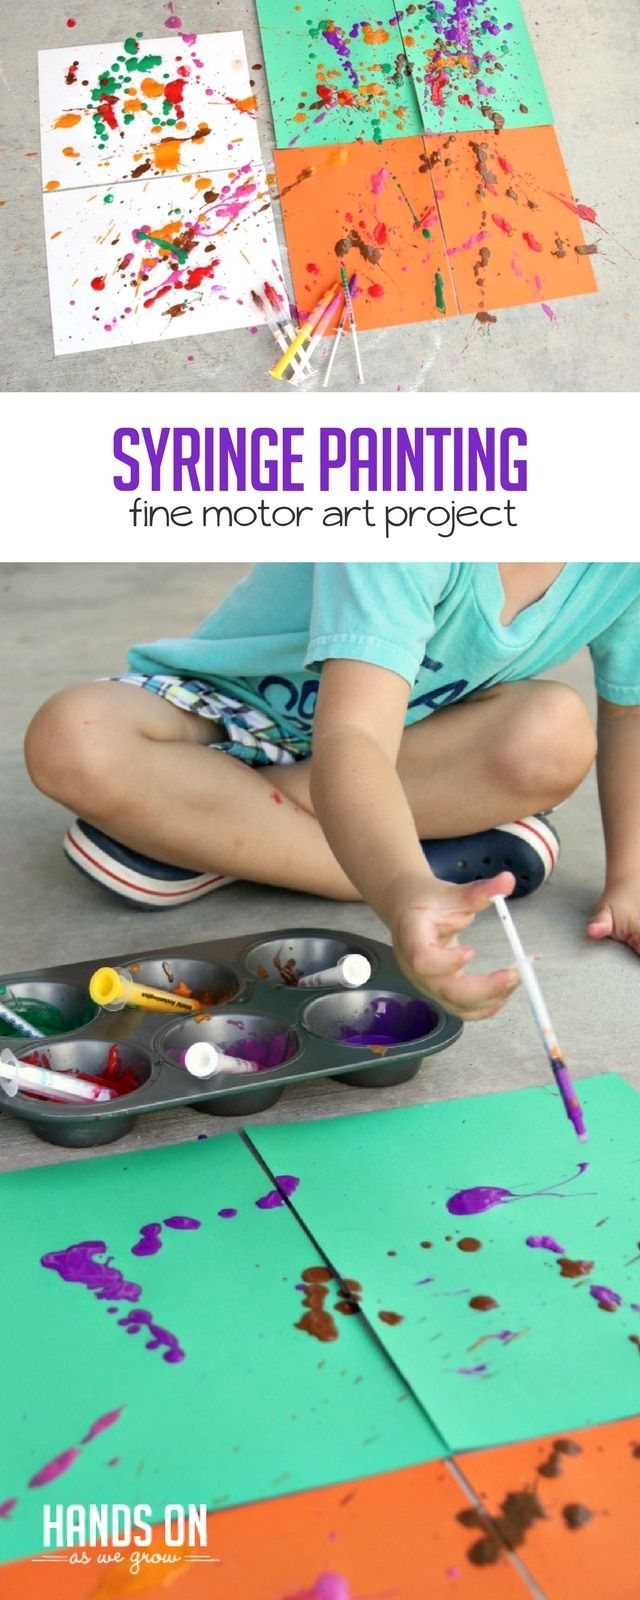 What a fun, active way to make art -- syringe painting! via @handsonaswegrow